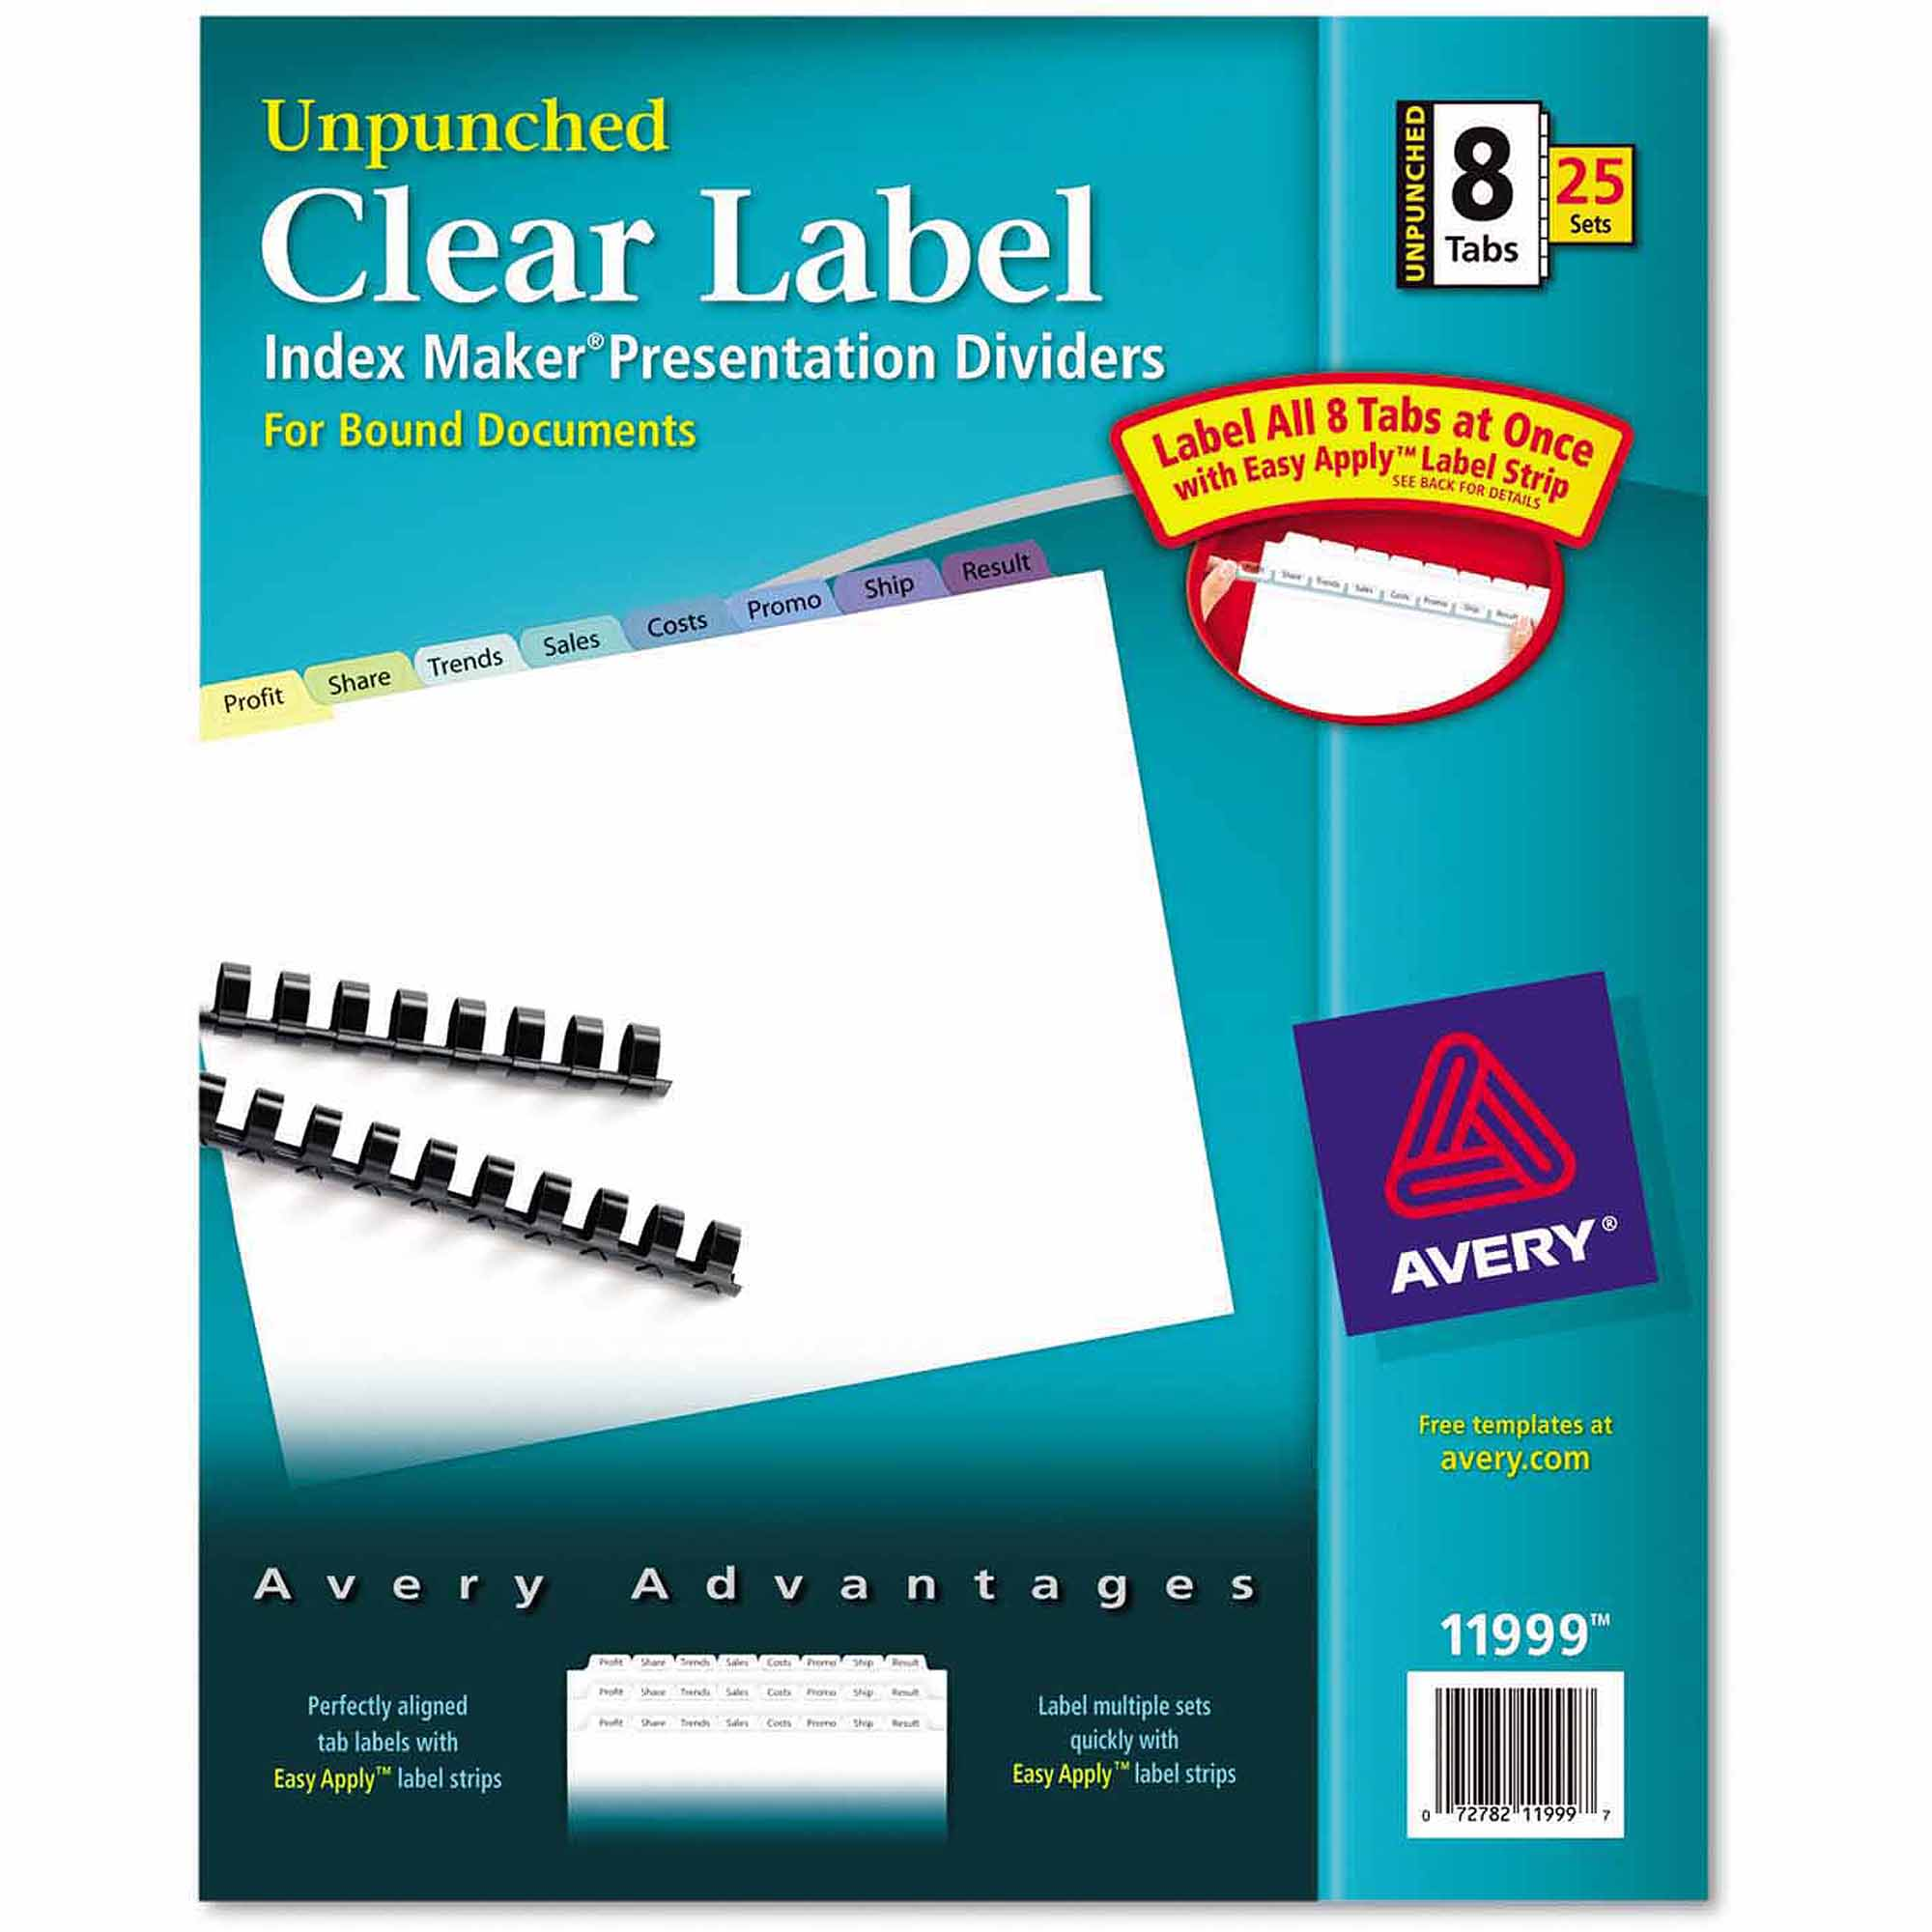 Avery Index Maker Clear Label Contemporary Color Dividers, 8-Tab, 25-Pack